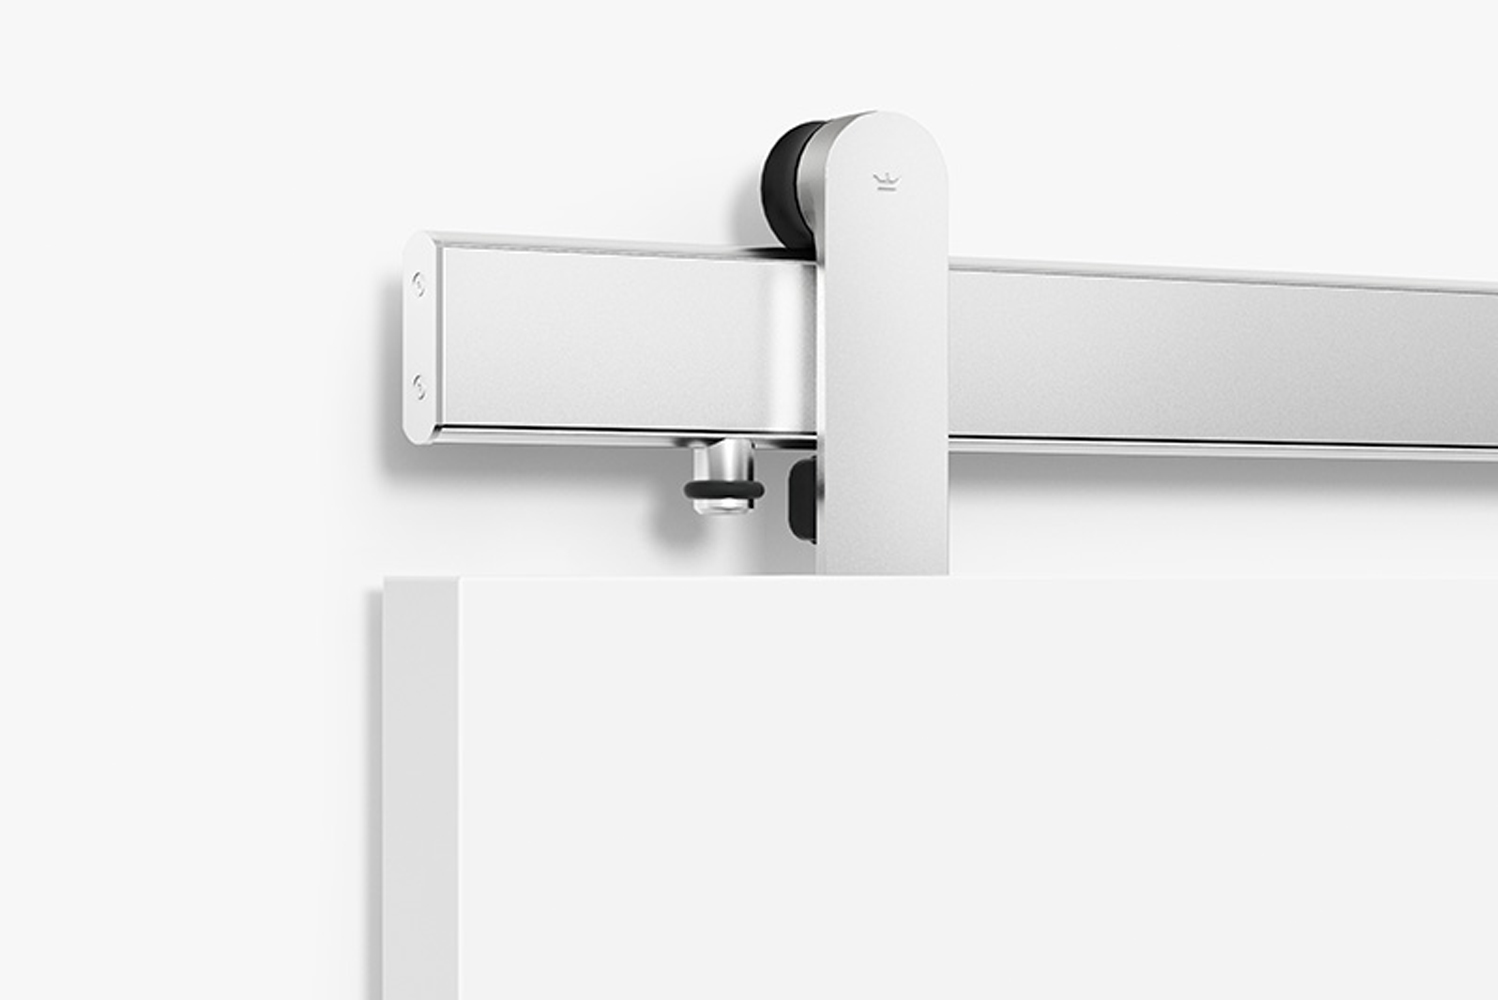 Loki is also compatible with ADA pull force requirements on door panels of almost any size and material.